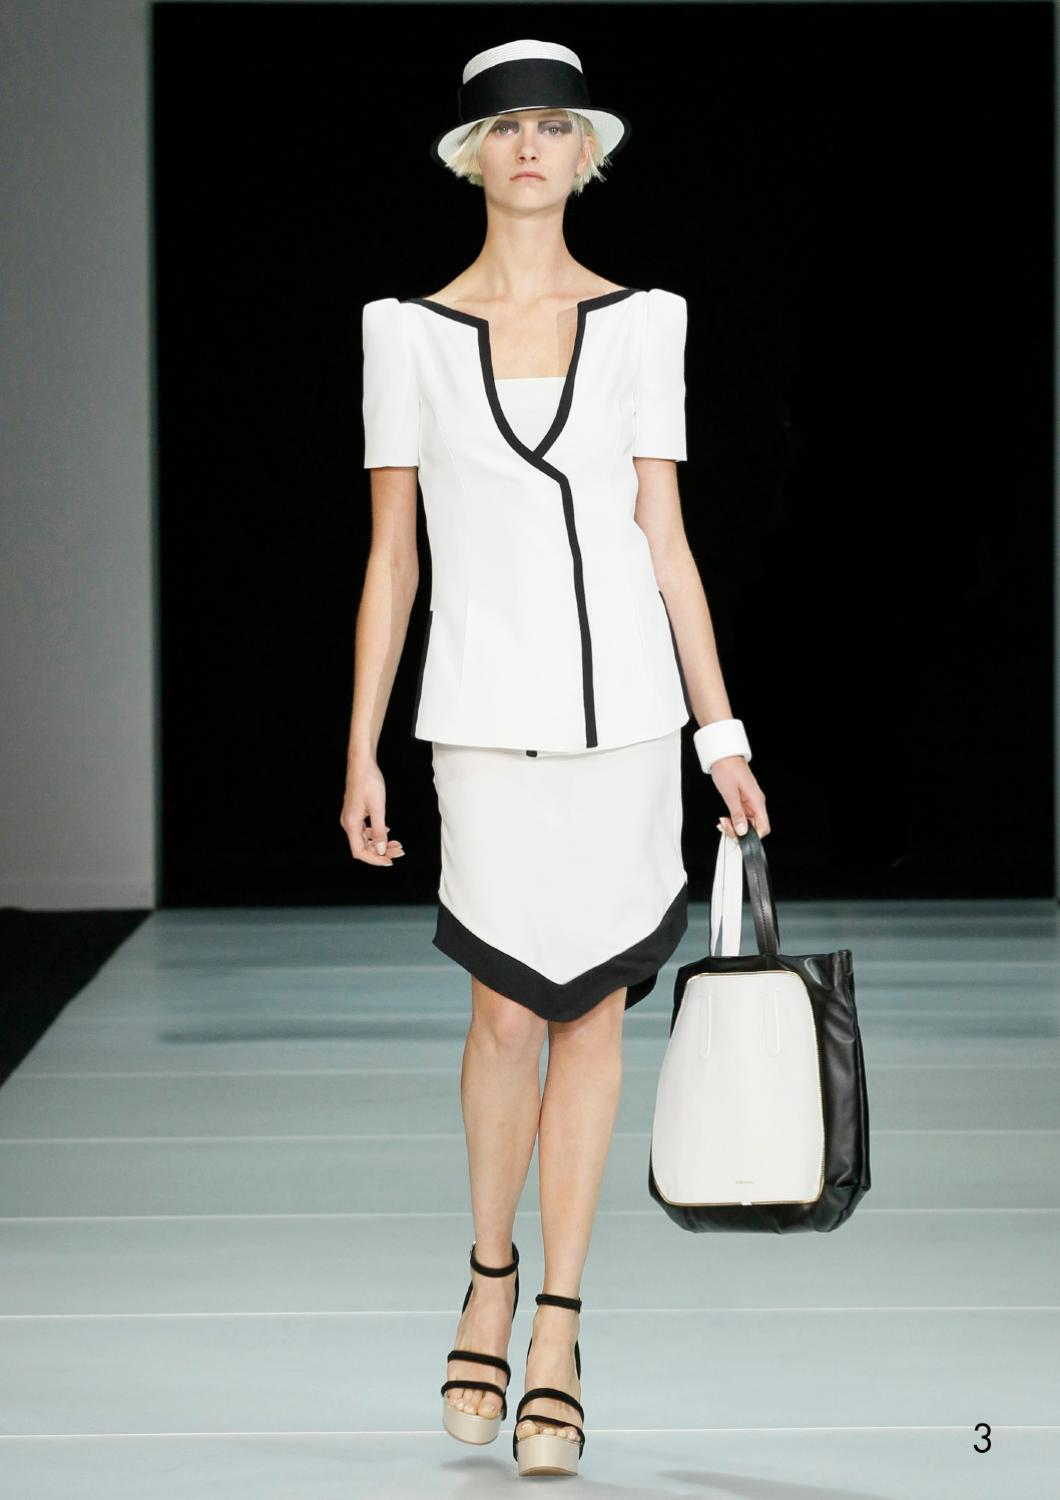 Vive Maria SpringSummer 2012 Collection forecasting